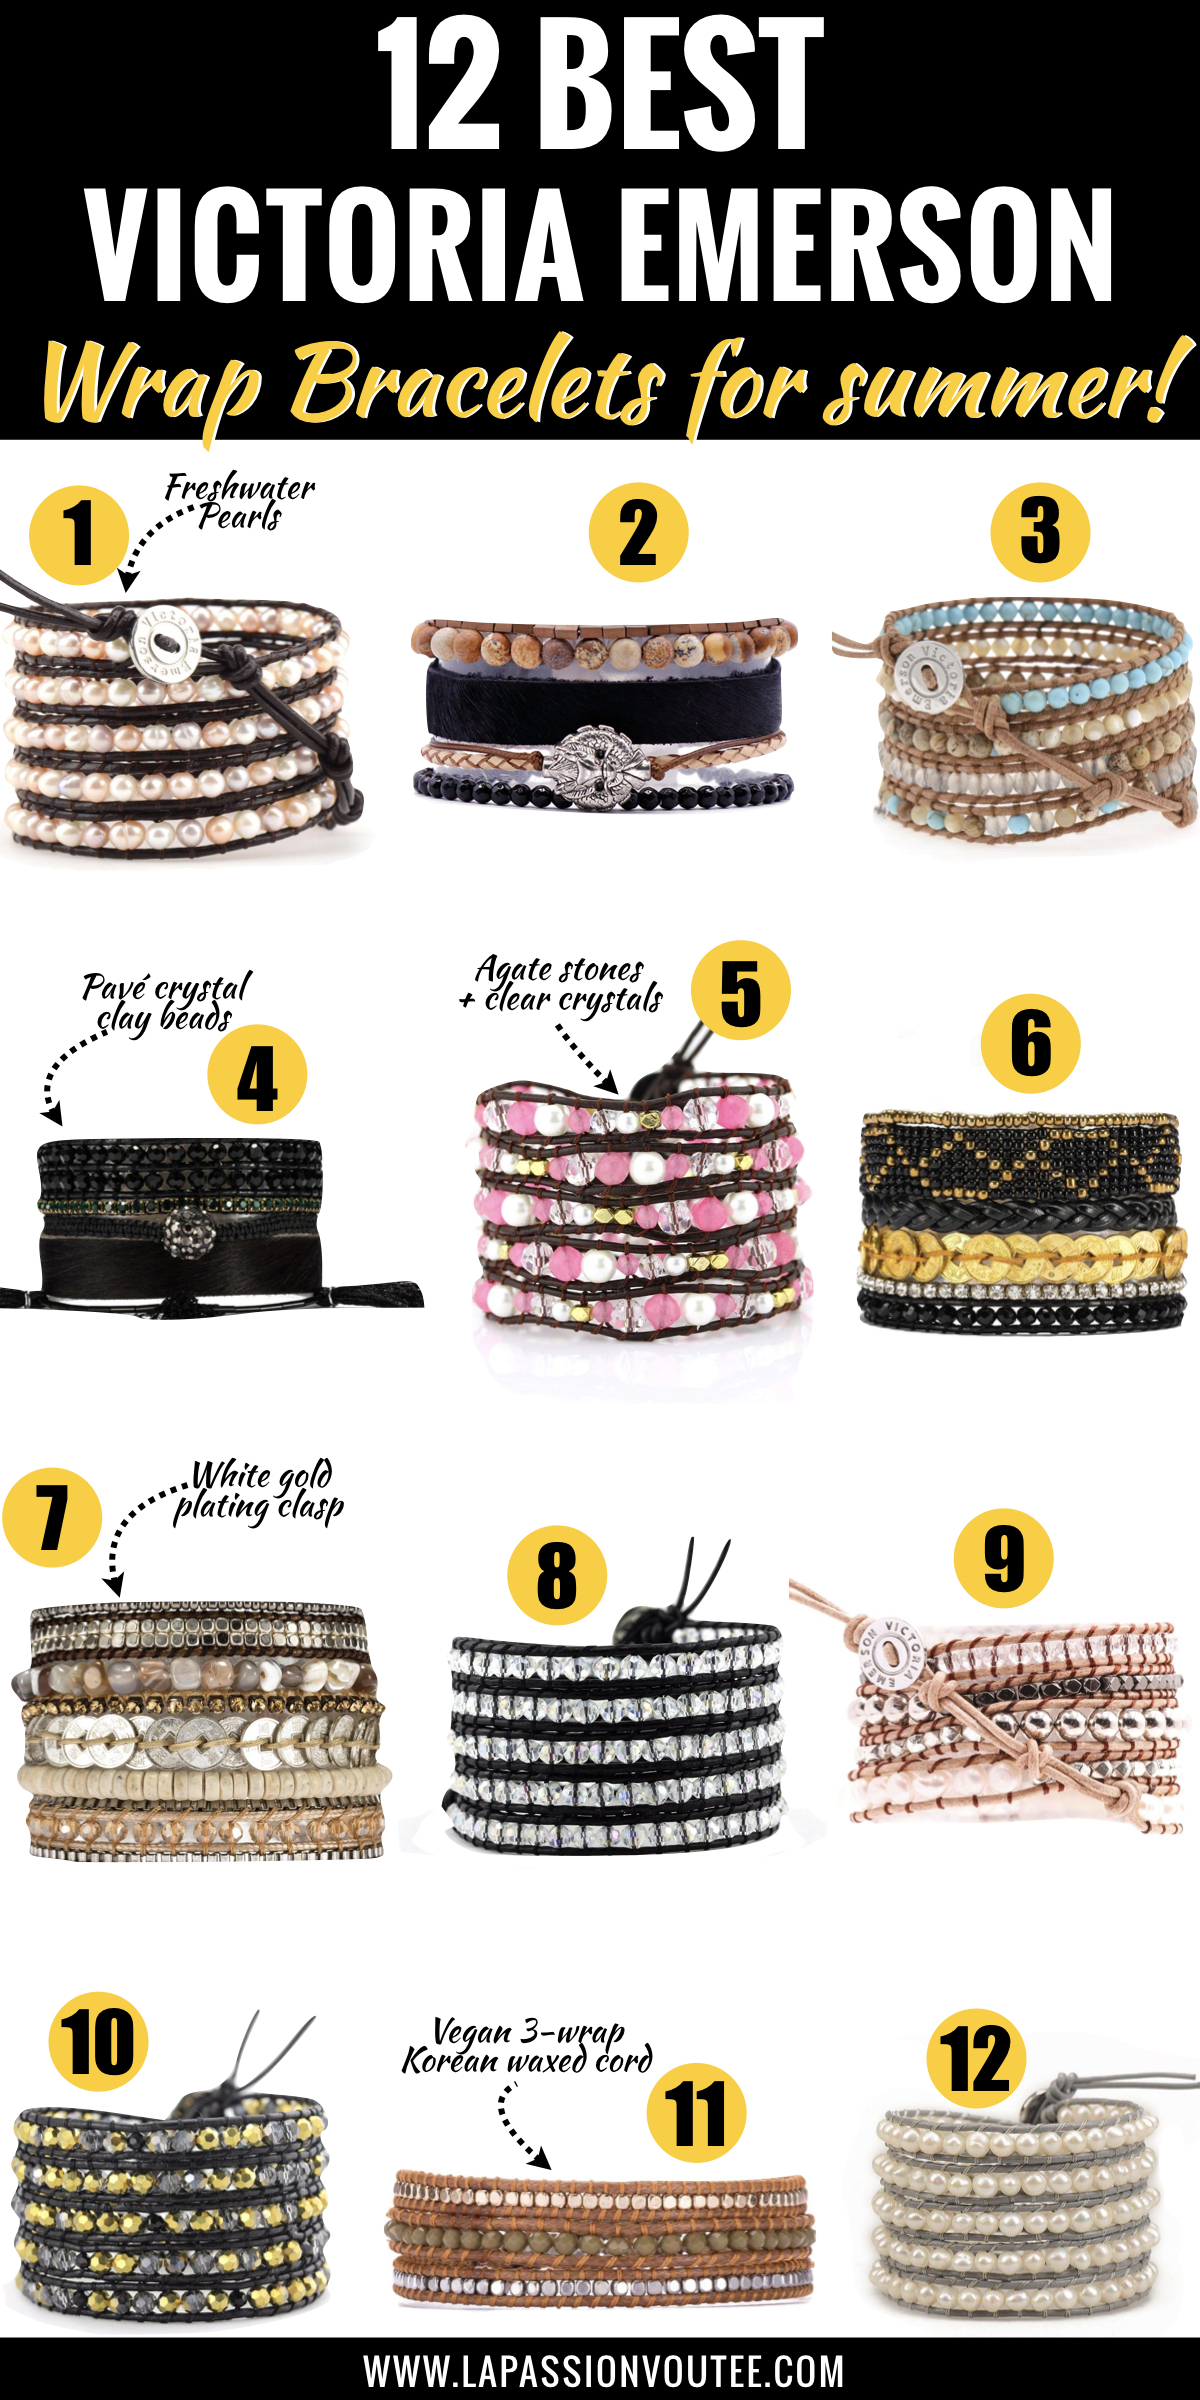 These are my favorite handmade leather wrap bracelets. The June Birthstone Wrap Bracelet ranks high on my favorites and so does the Pinktricity Classic Wrap made from agate stones and clear crystals.